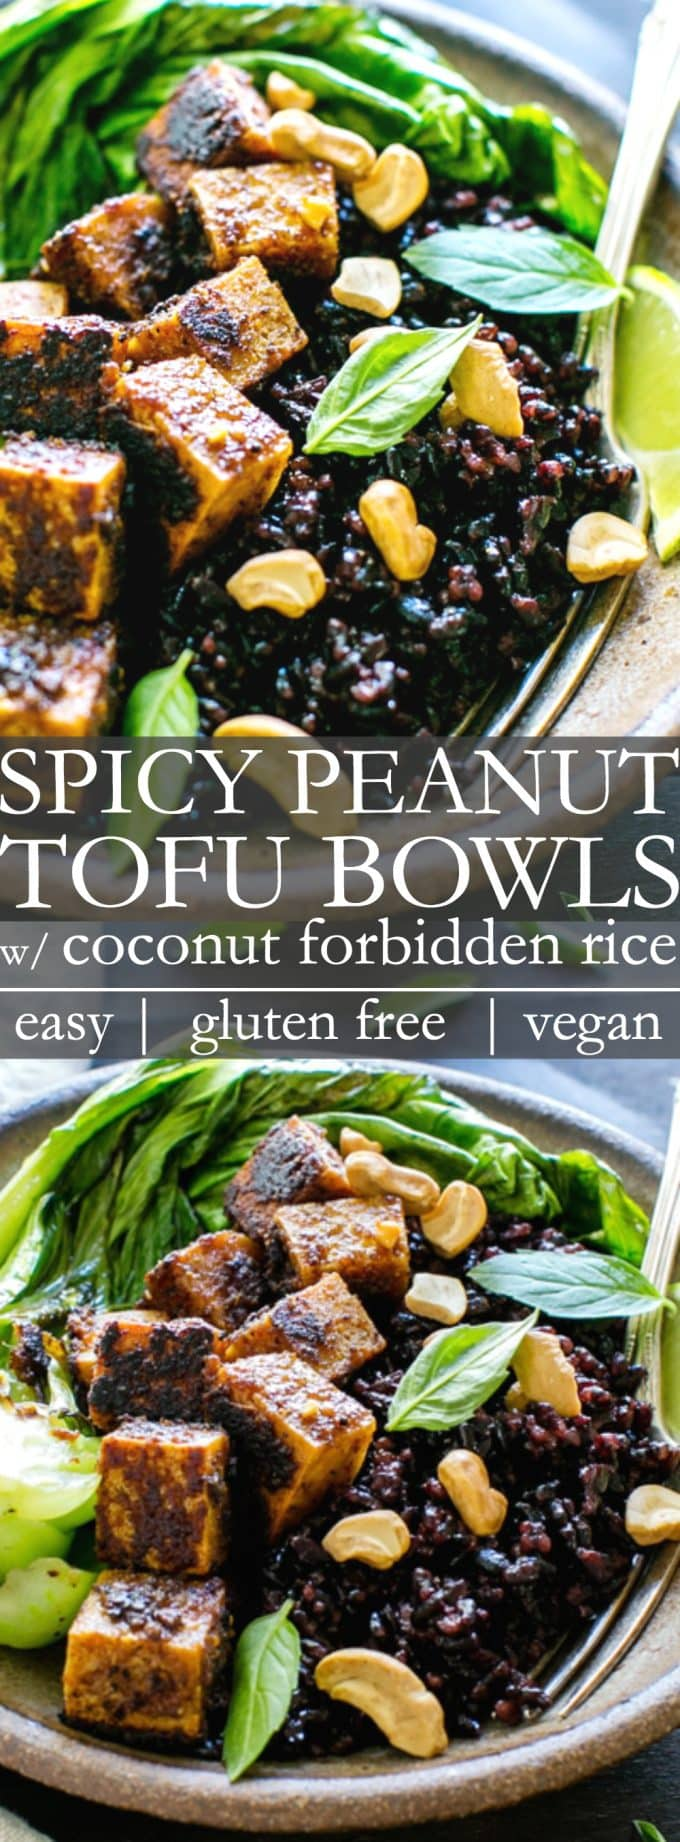 Spicy Peanut Tofu Bowl recipe with Coconut Forbidden Rice